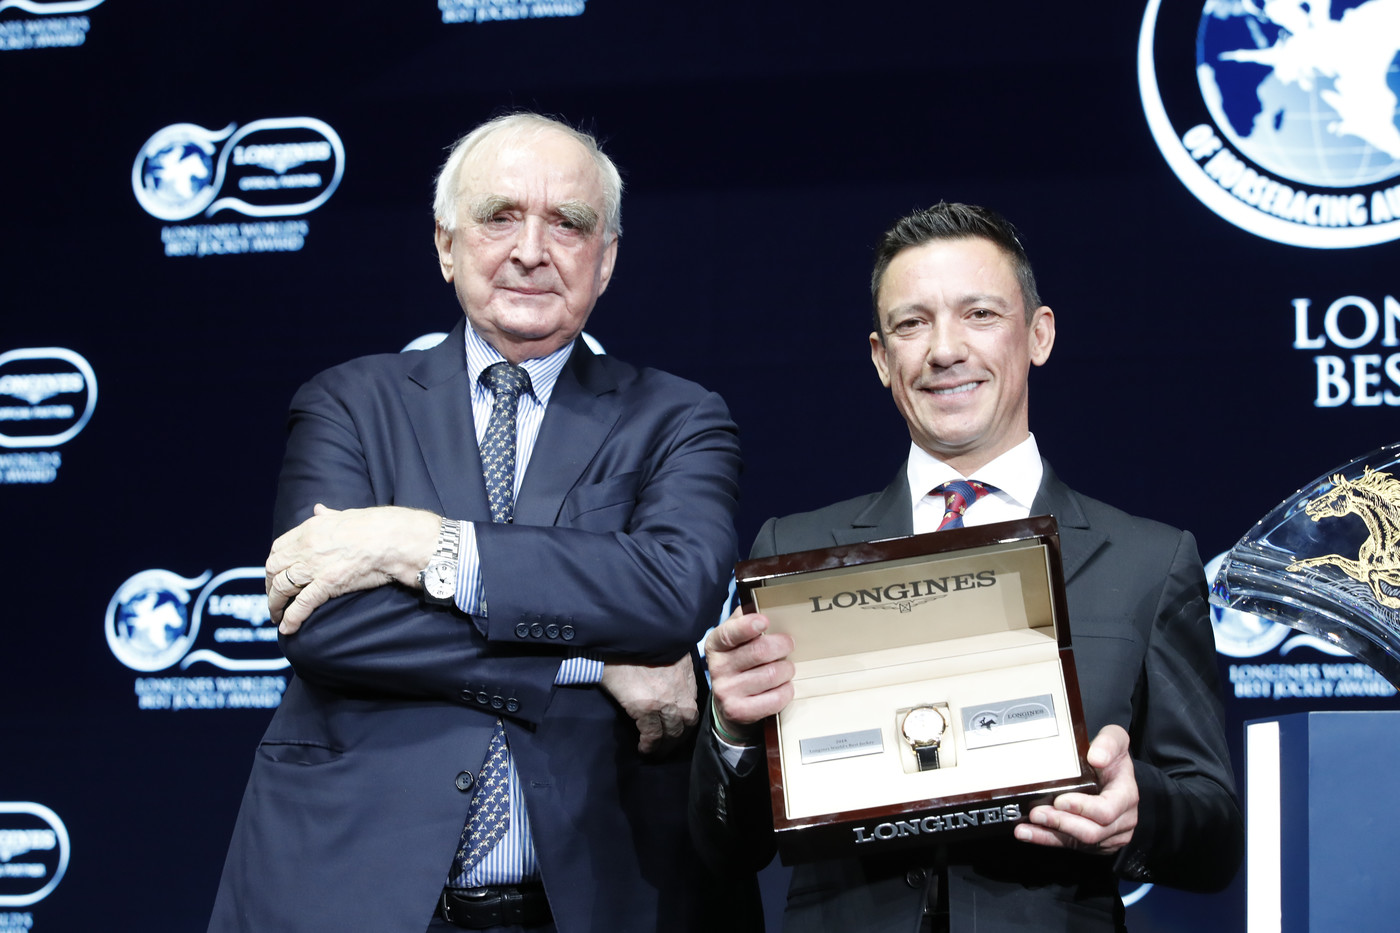 Longines Flat Racing Event: Frankie Dettori Crowned the 2018 Longines World's Best Jockey  5